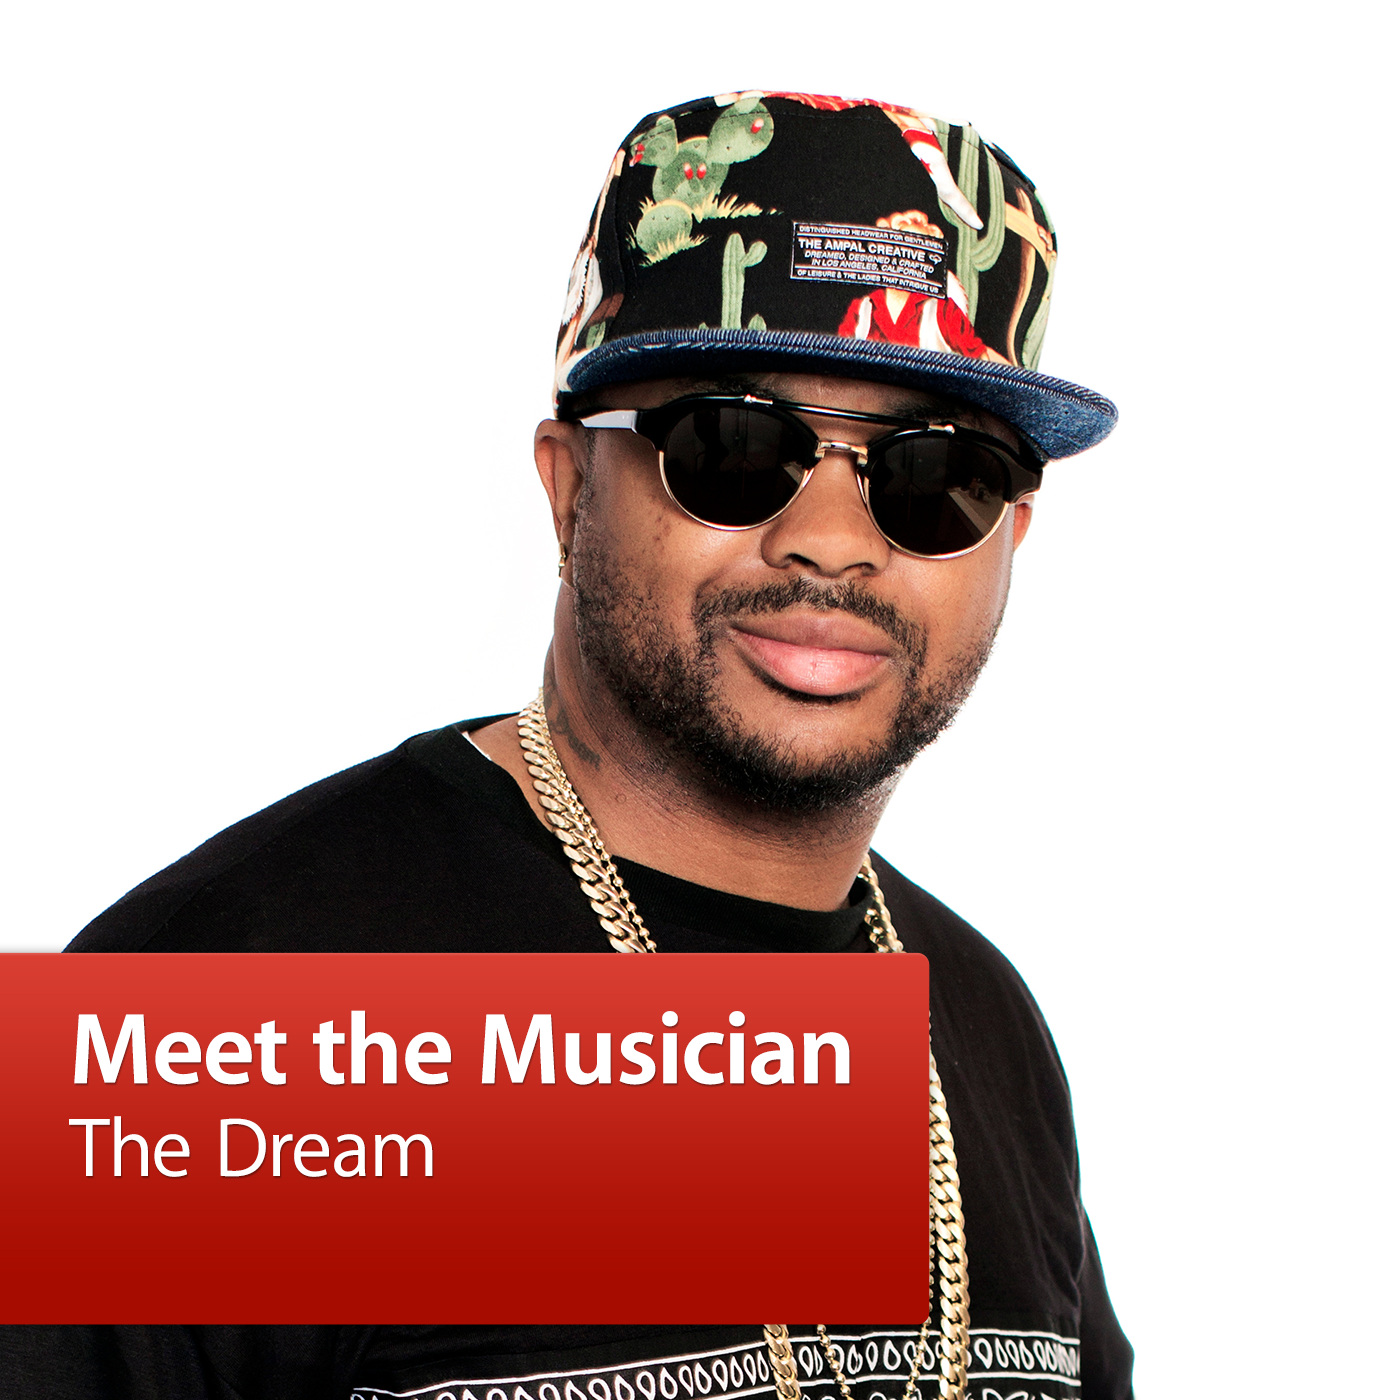 The-Dream: Meet the Musician